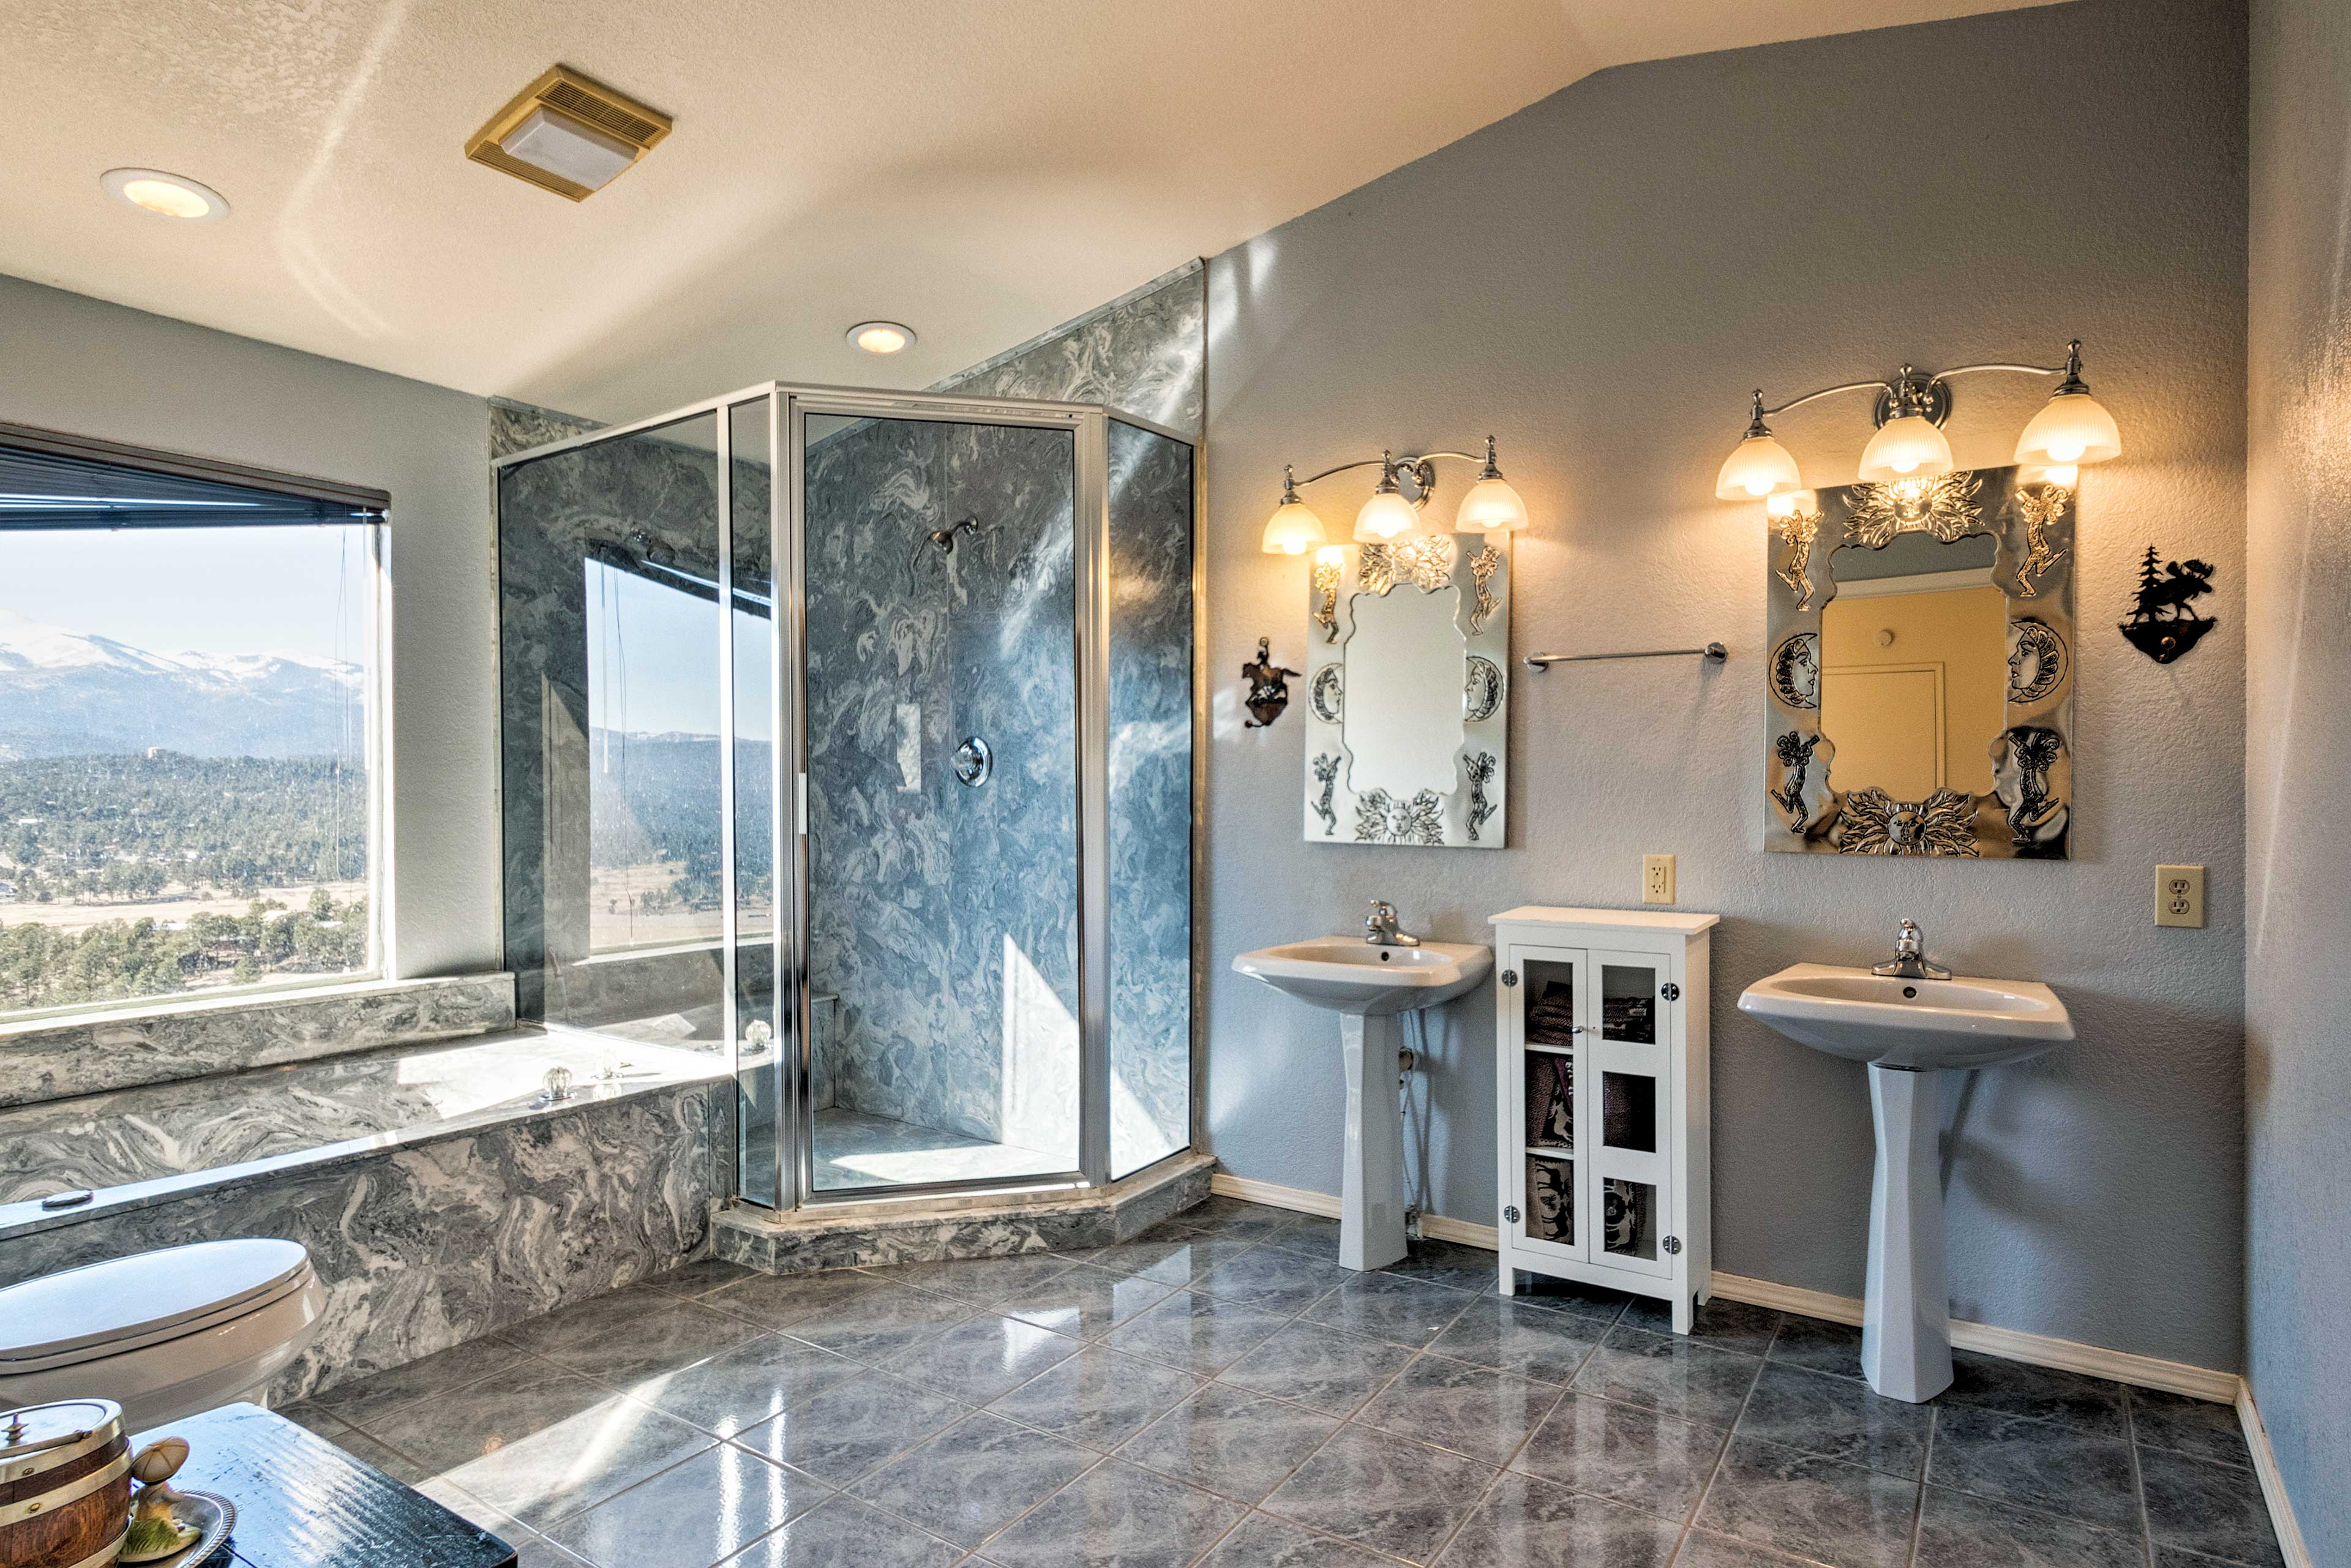 The views continue in the en-suite full bath with a shower & a separate tub.